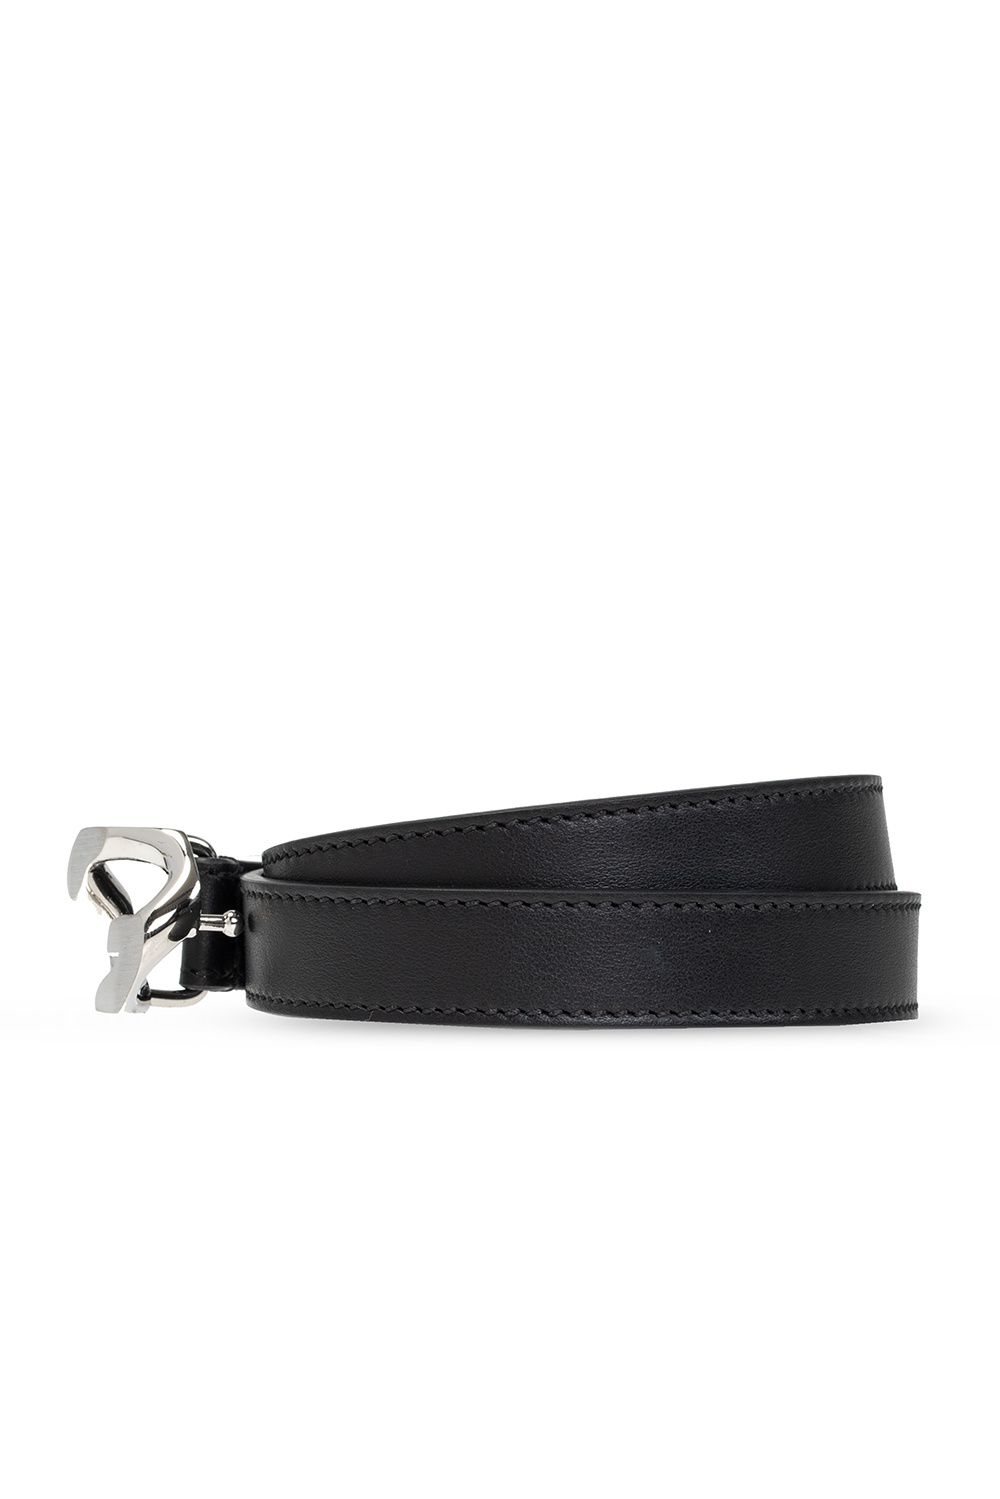 Givenchy Belt with logo